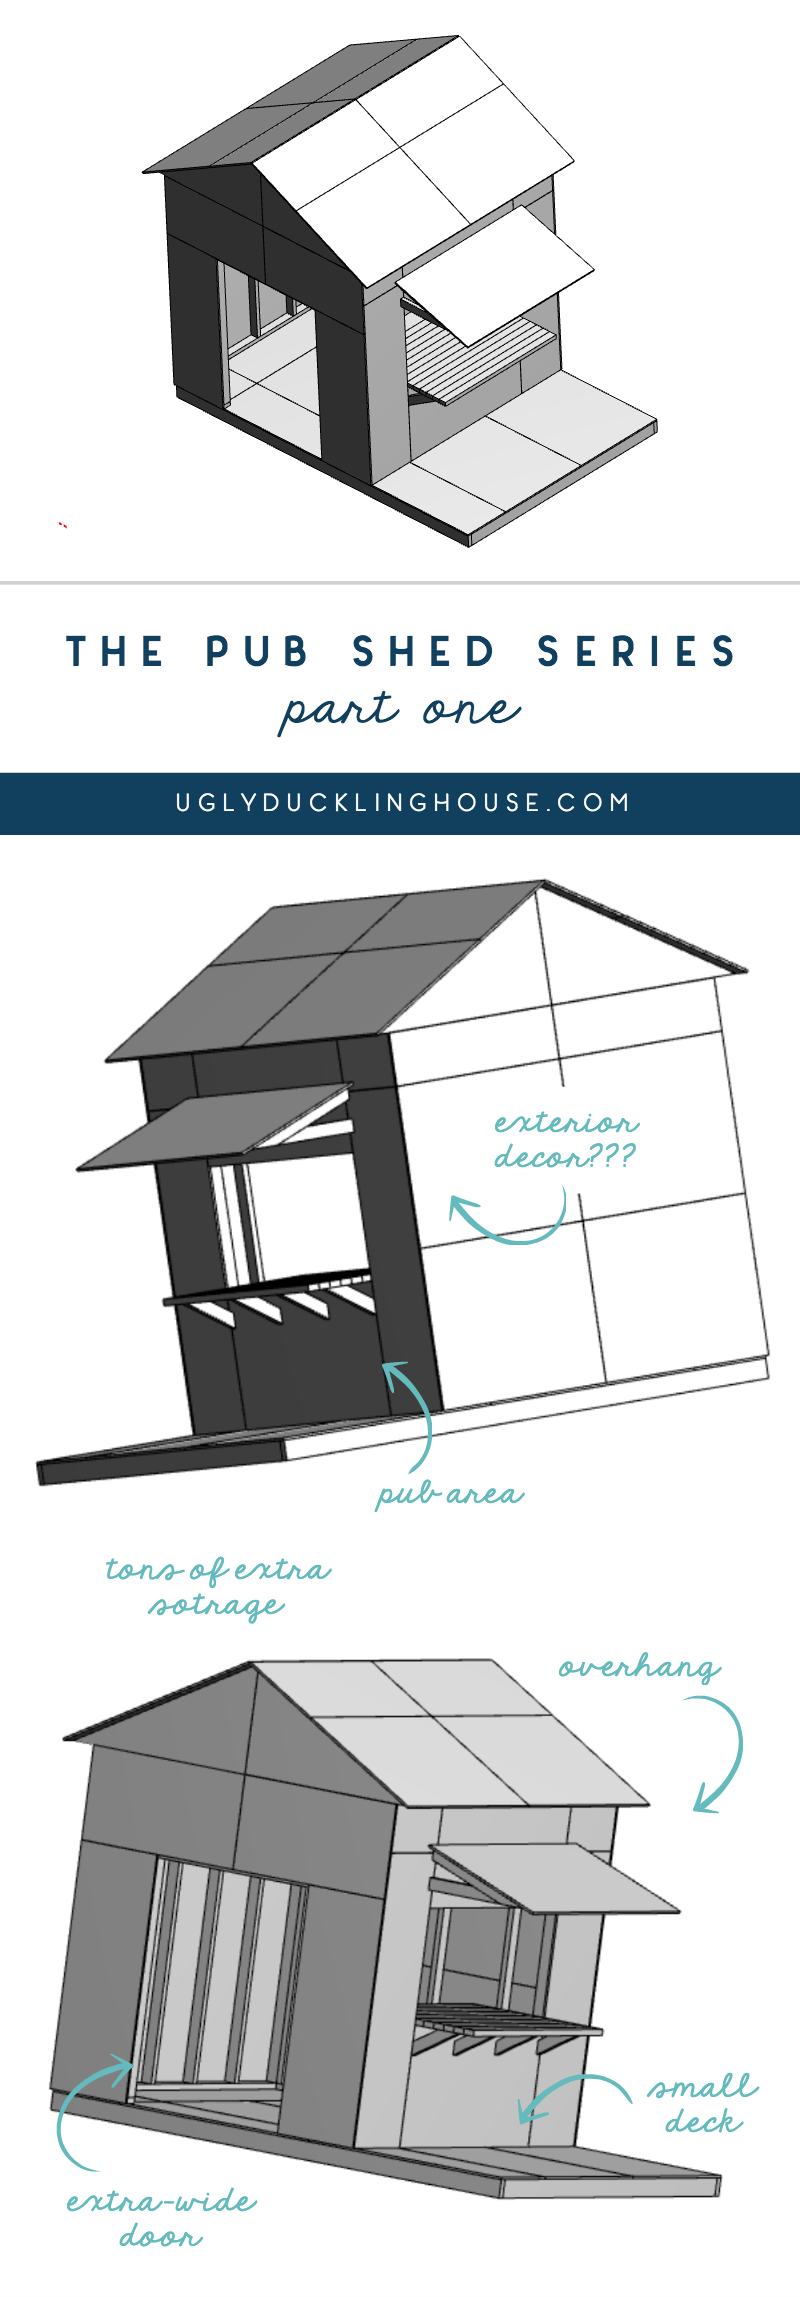 the pub shed series from the ugly duckling house